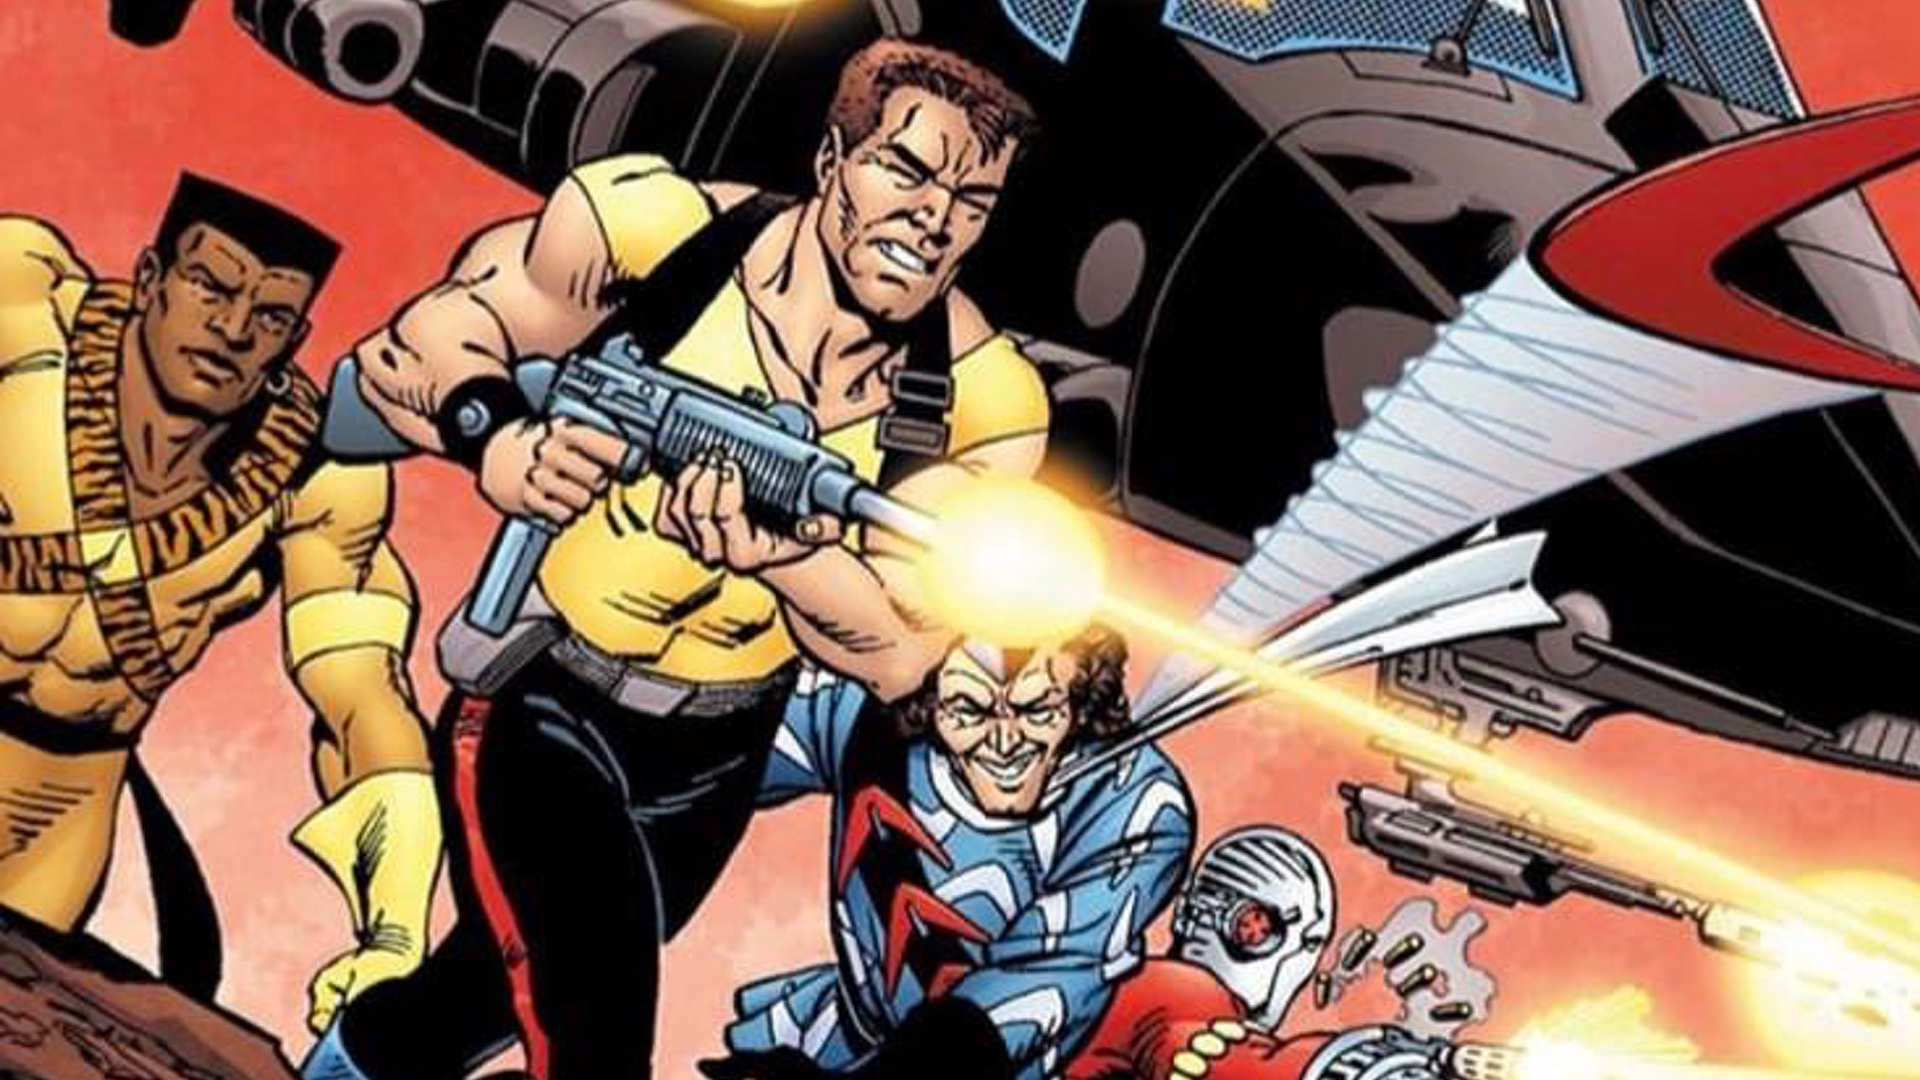 James Gunn's THE SUICIDE SQUAD Will Draw From John